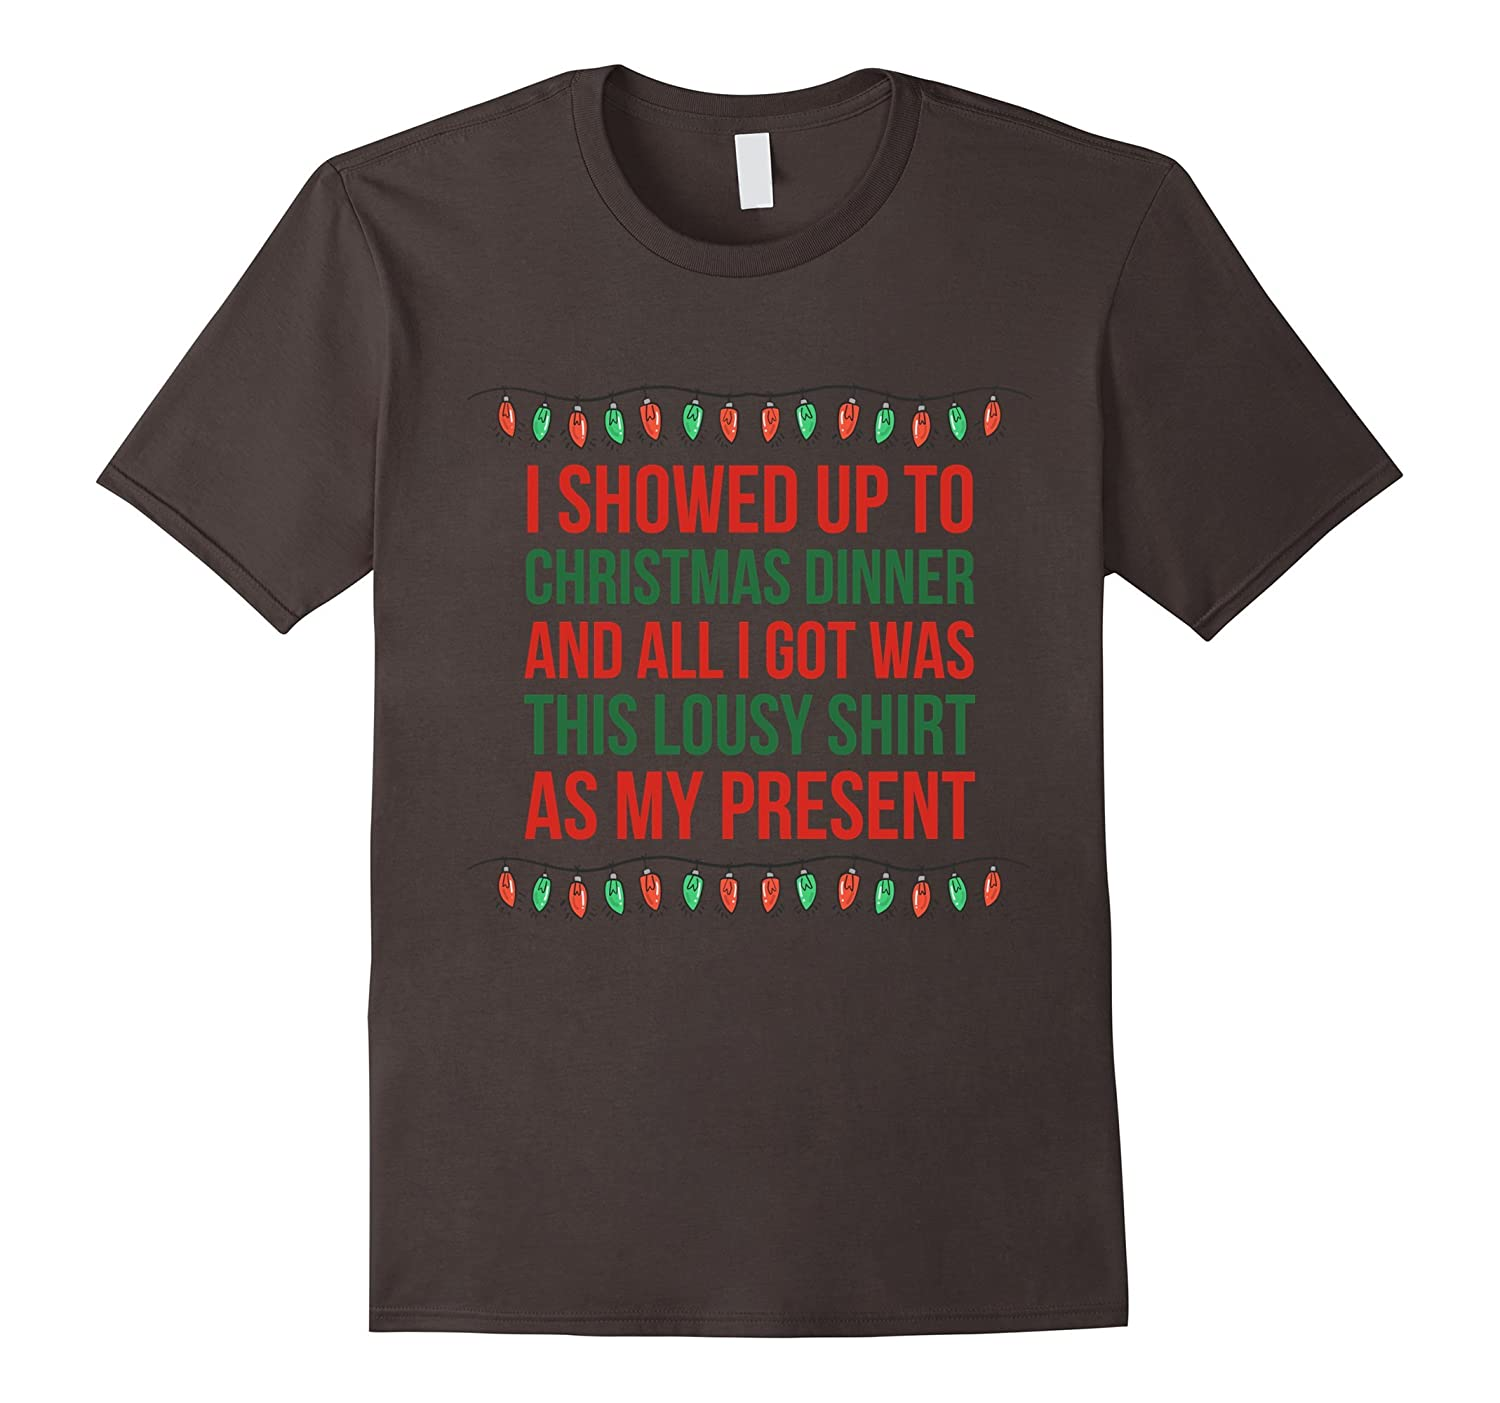 All I Got Was This Lousy Shirt As My Present Christmas Shirt-RT